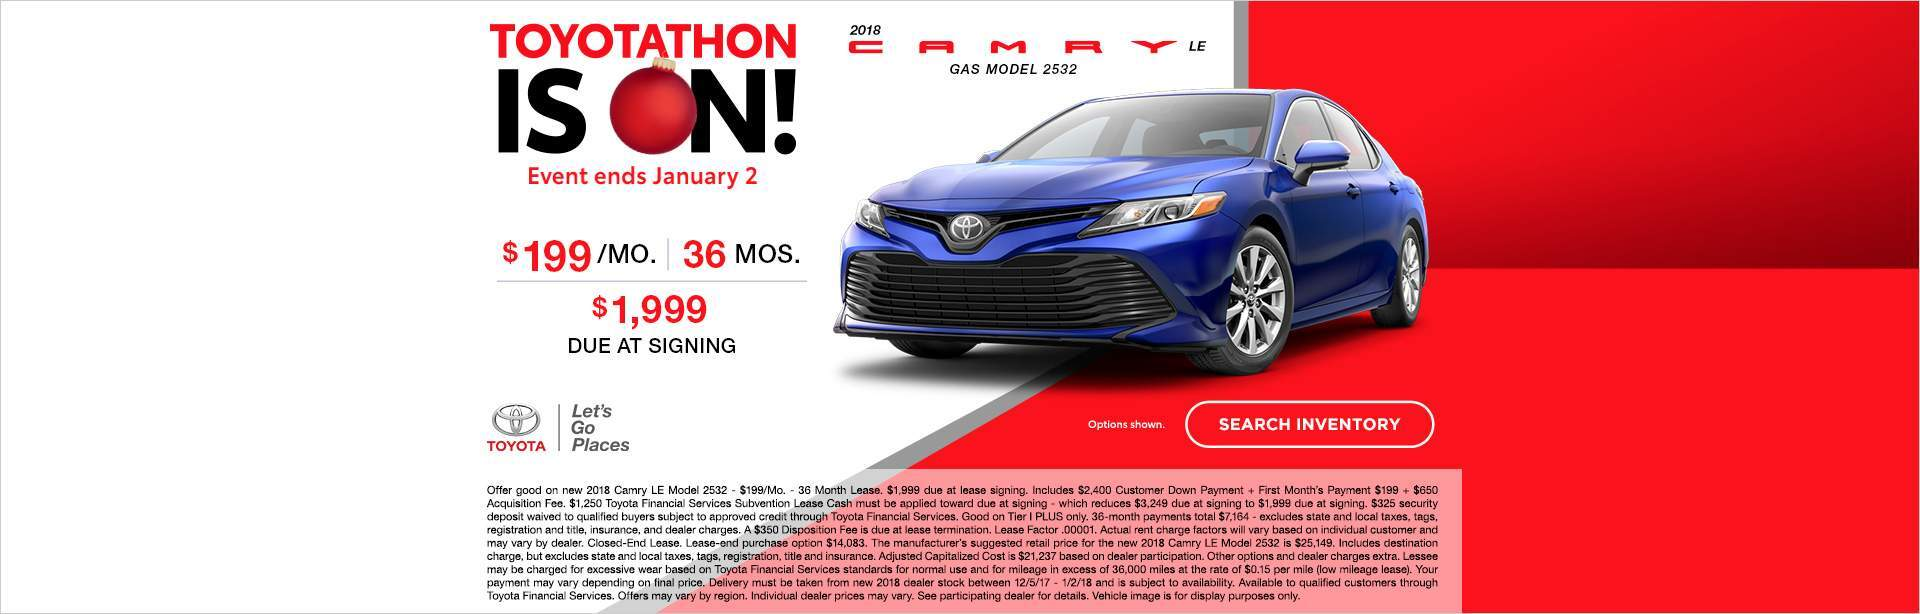 December-thon Camry Lease